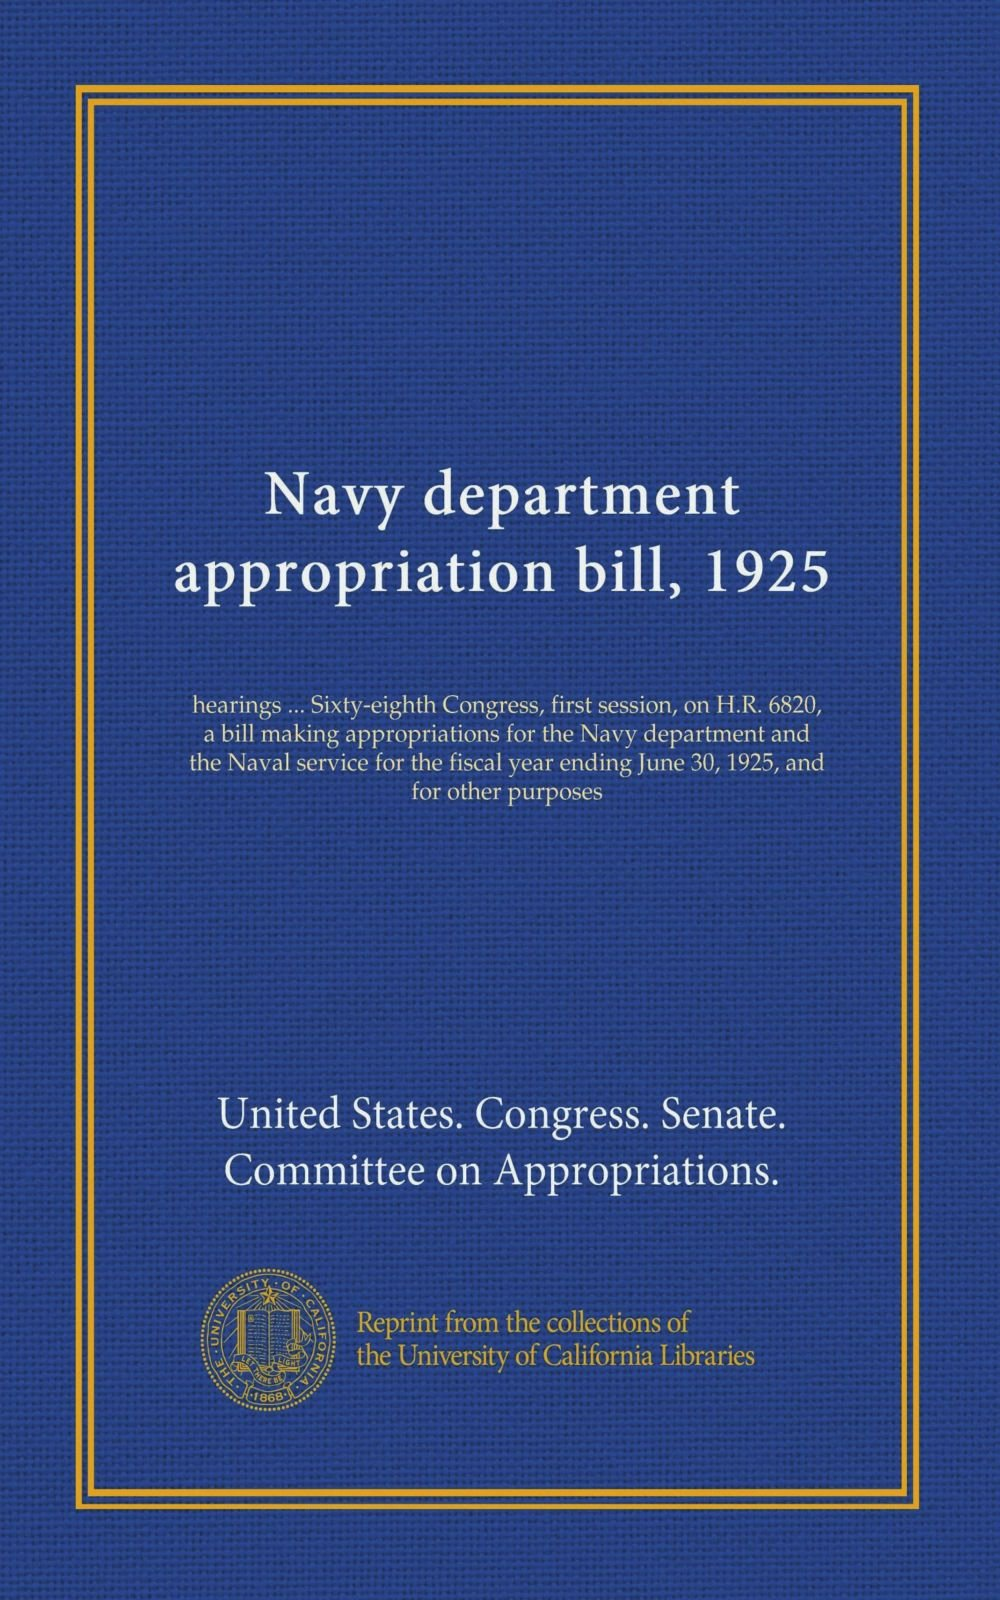 Download Navy department appropriation bill, 1925 (Vol-1): hearings ... Sixty-eighth Congress, first session, on H.R. 6820, a bill making appropriations for ... ending June 30, 1925, and for other purposes ebook